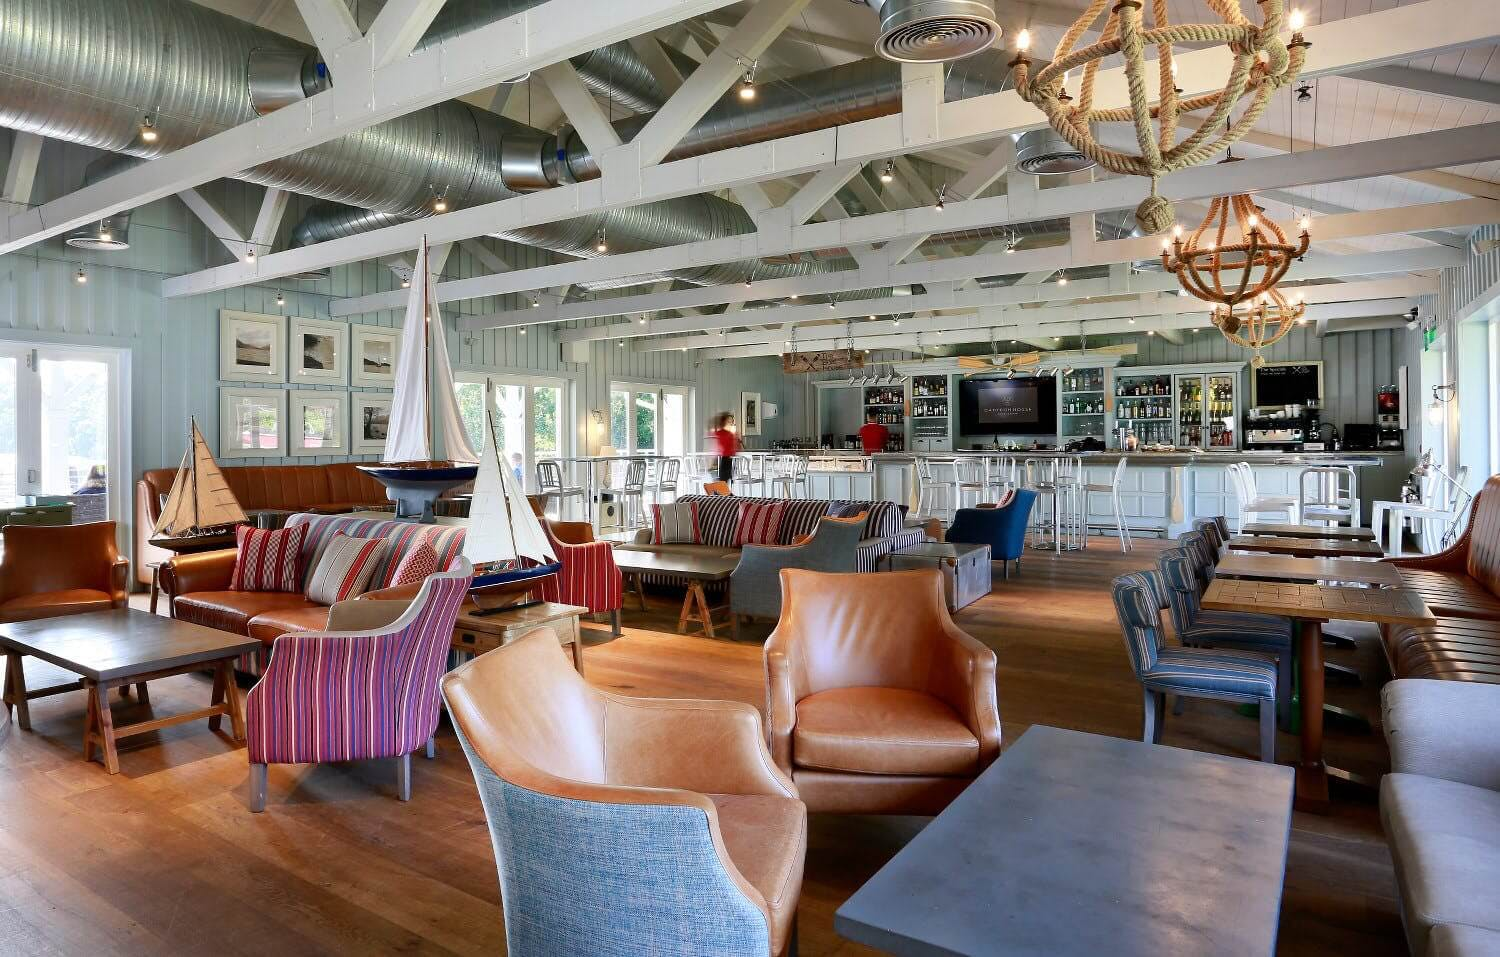 The Boat House bar area